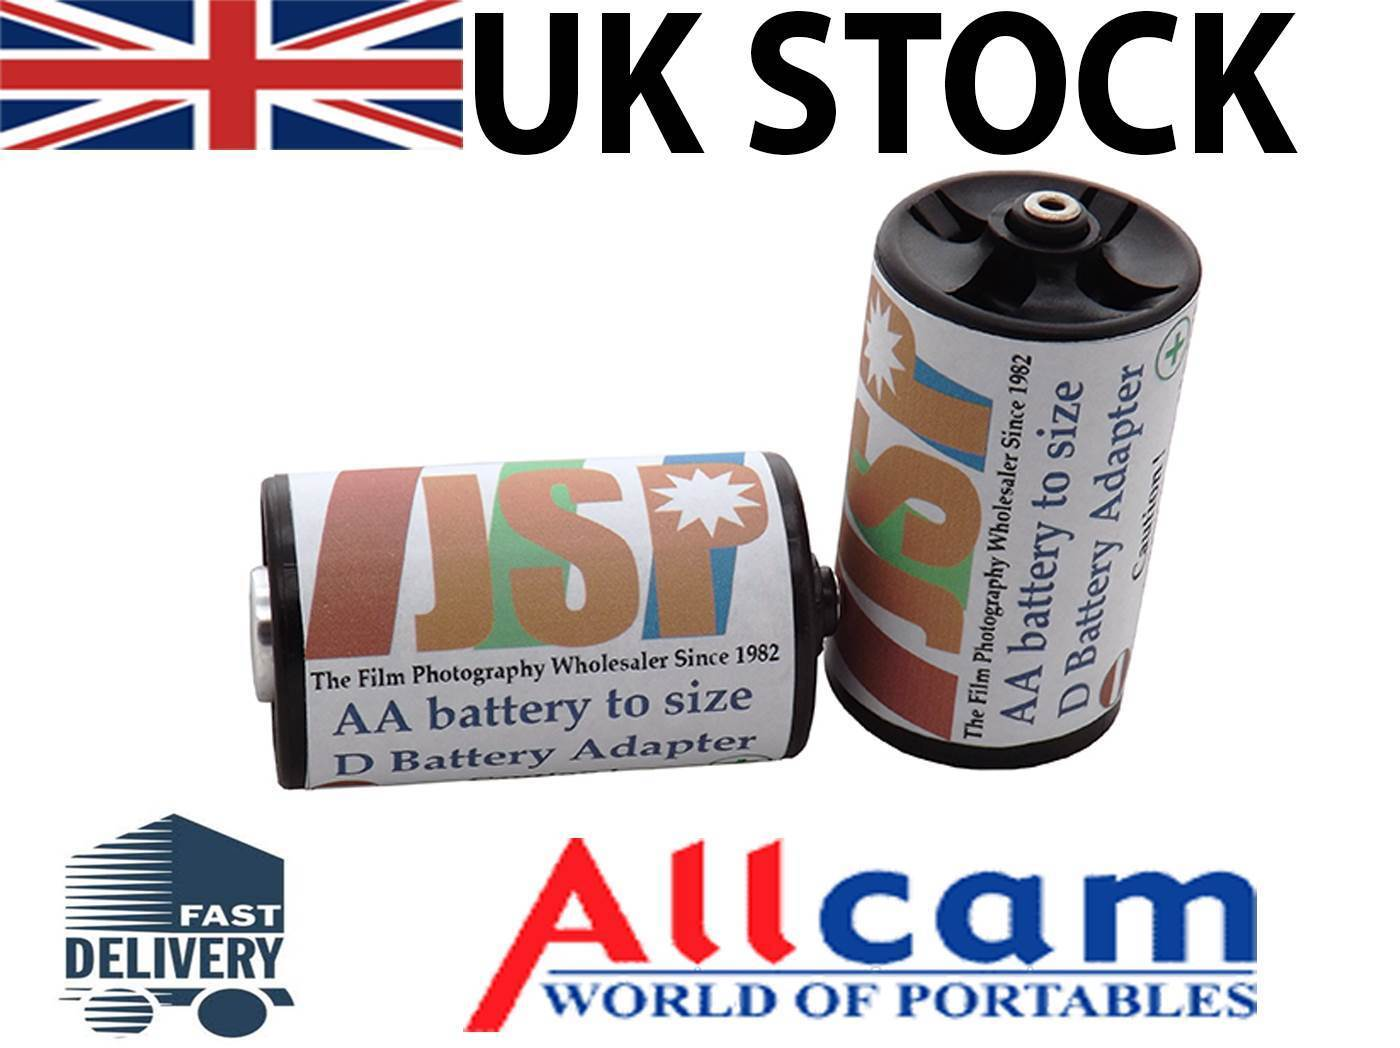 2 Pieces AA battery to size D Battery Adapters, JSP brand, New